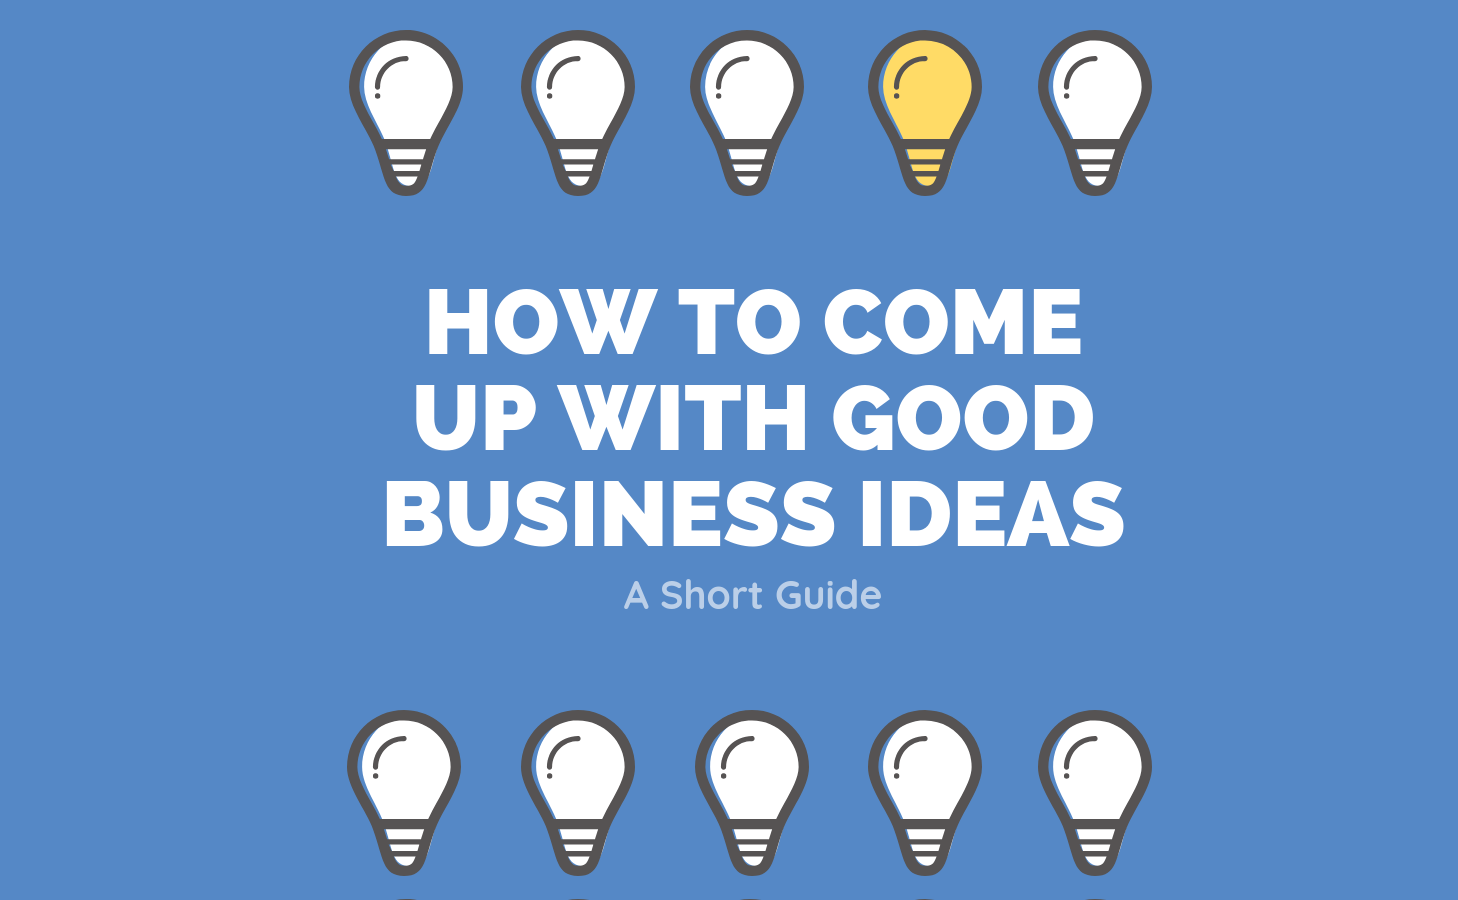 How To Come Up With Good Business Ideas